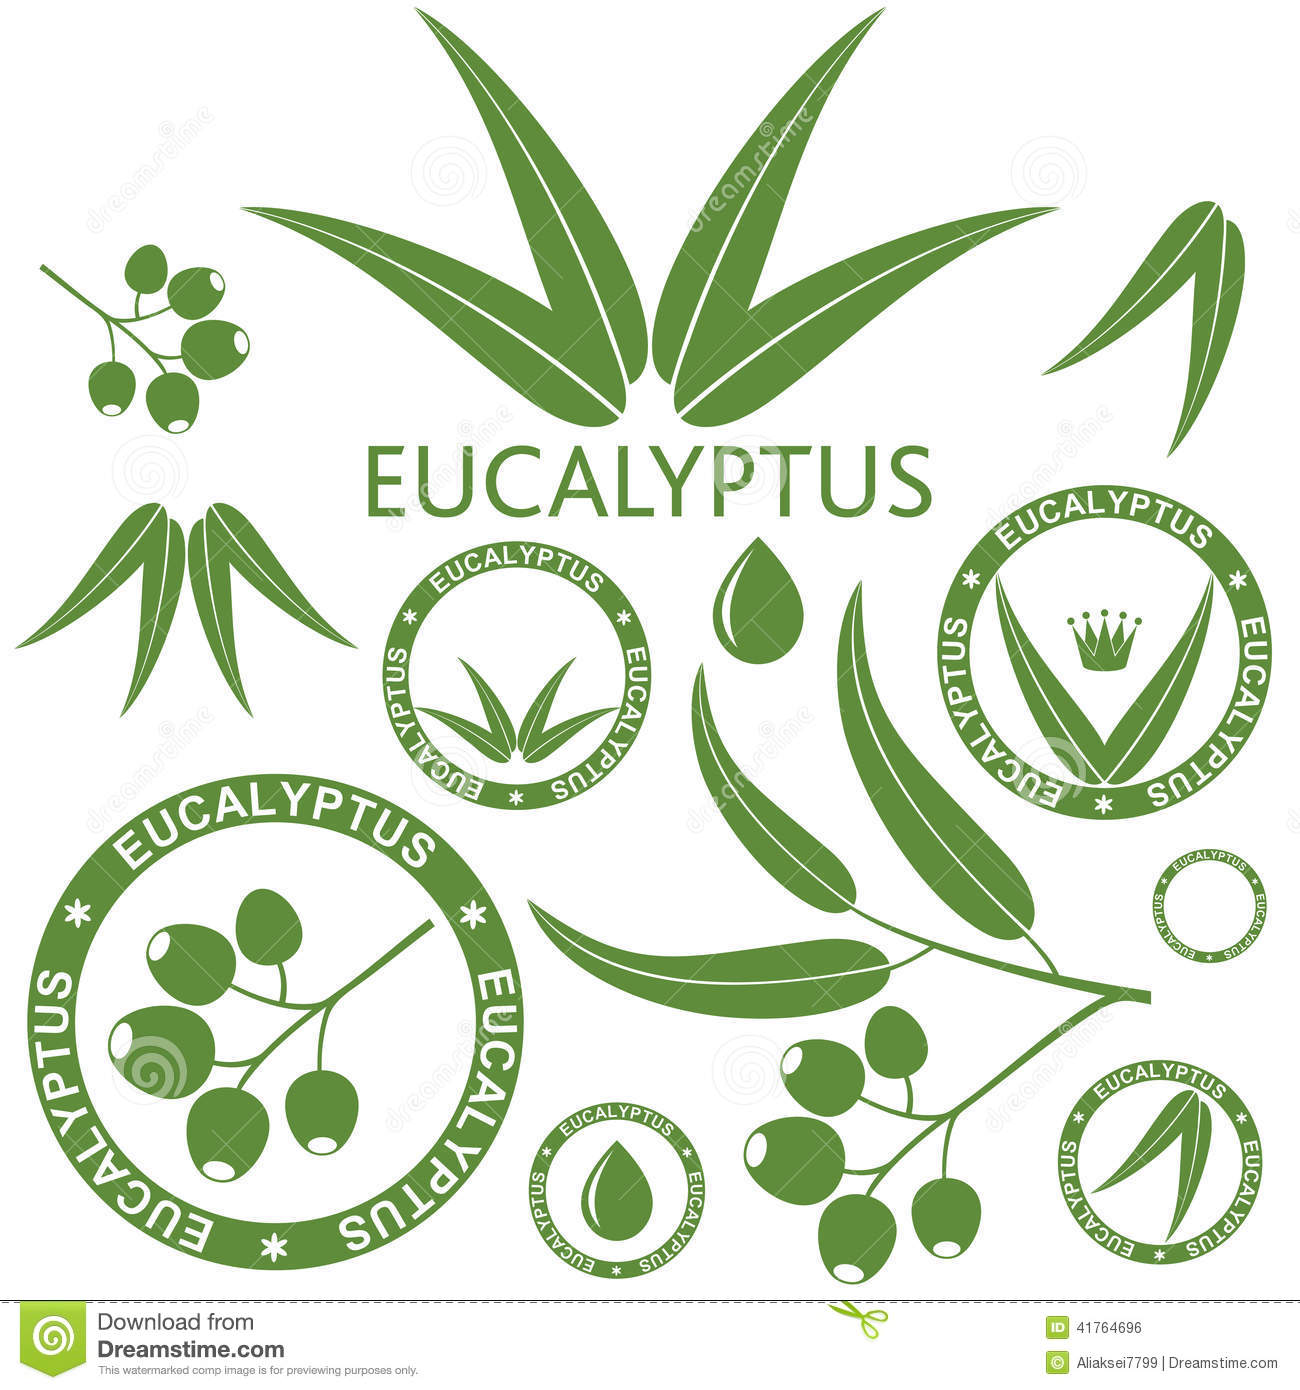 Eucalyptus clipart #14, Download drawings